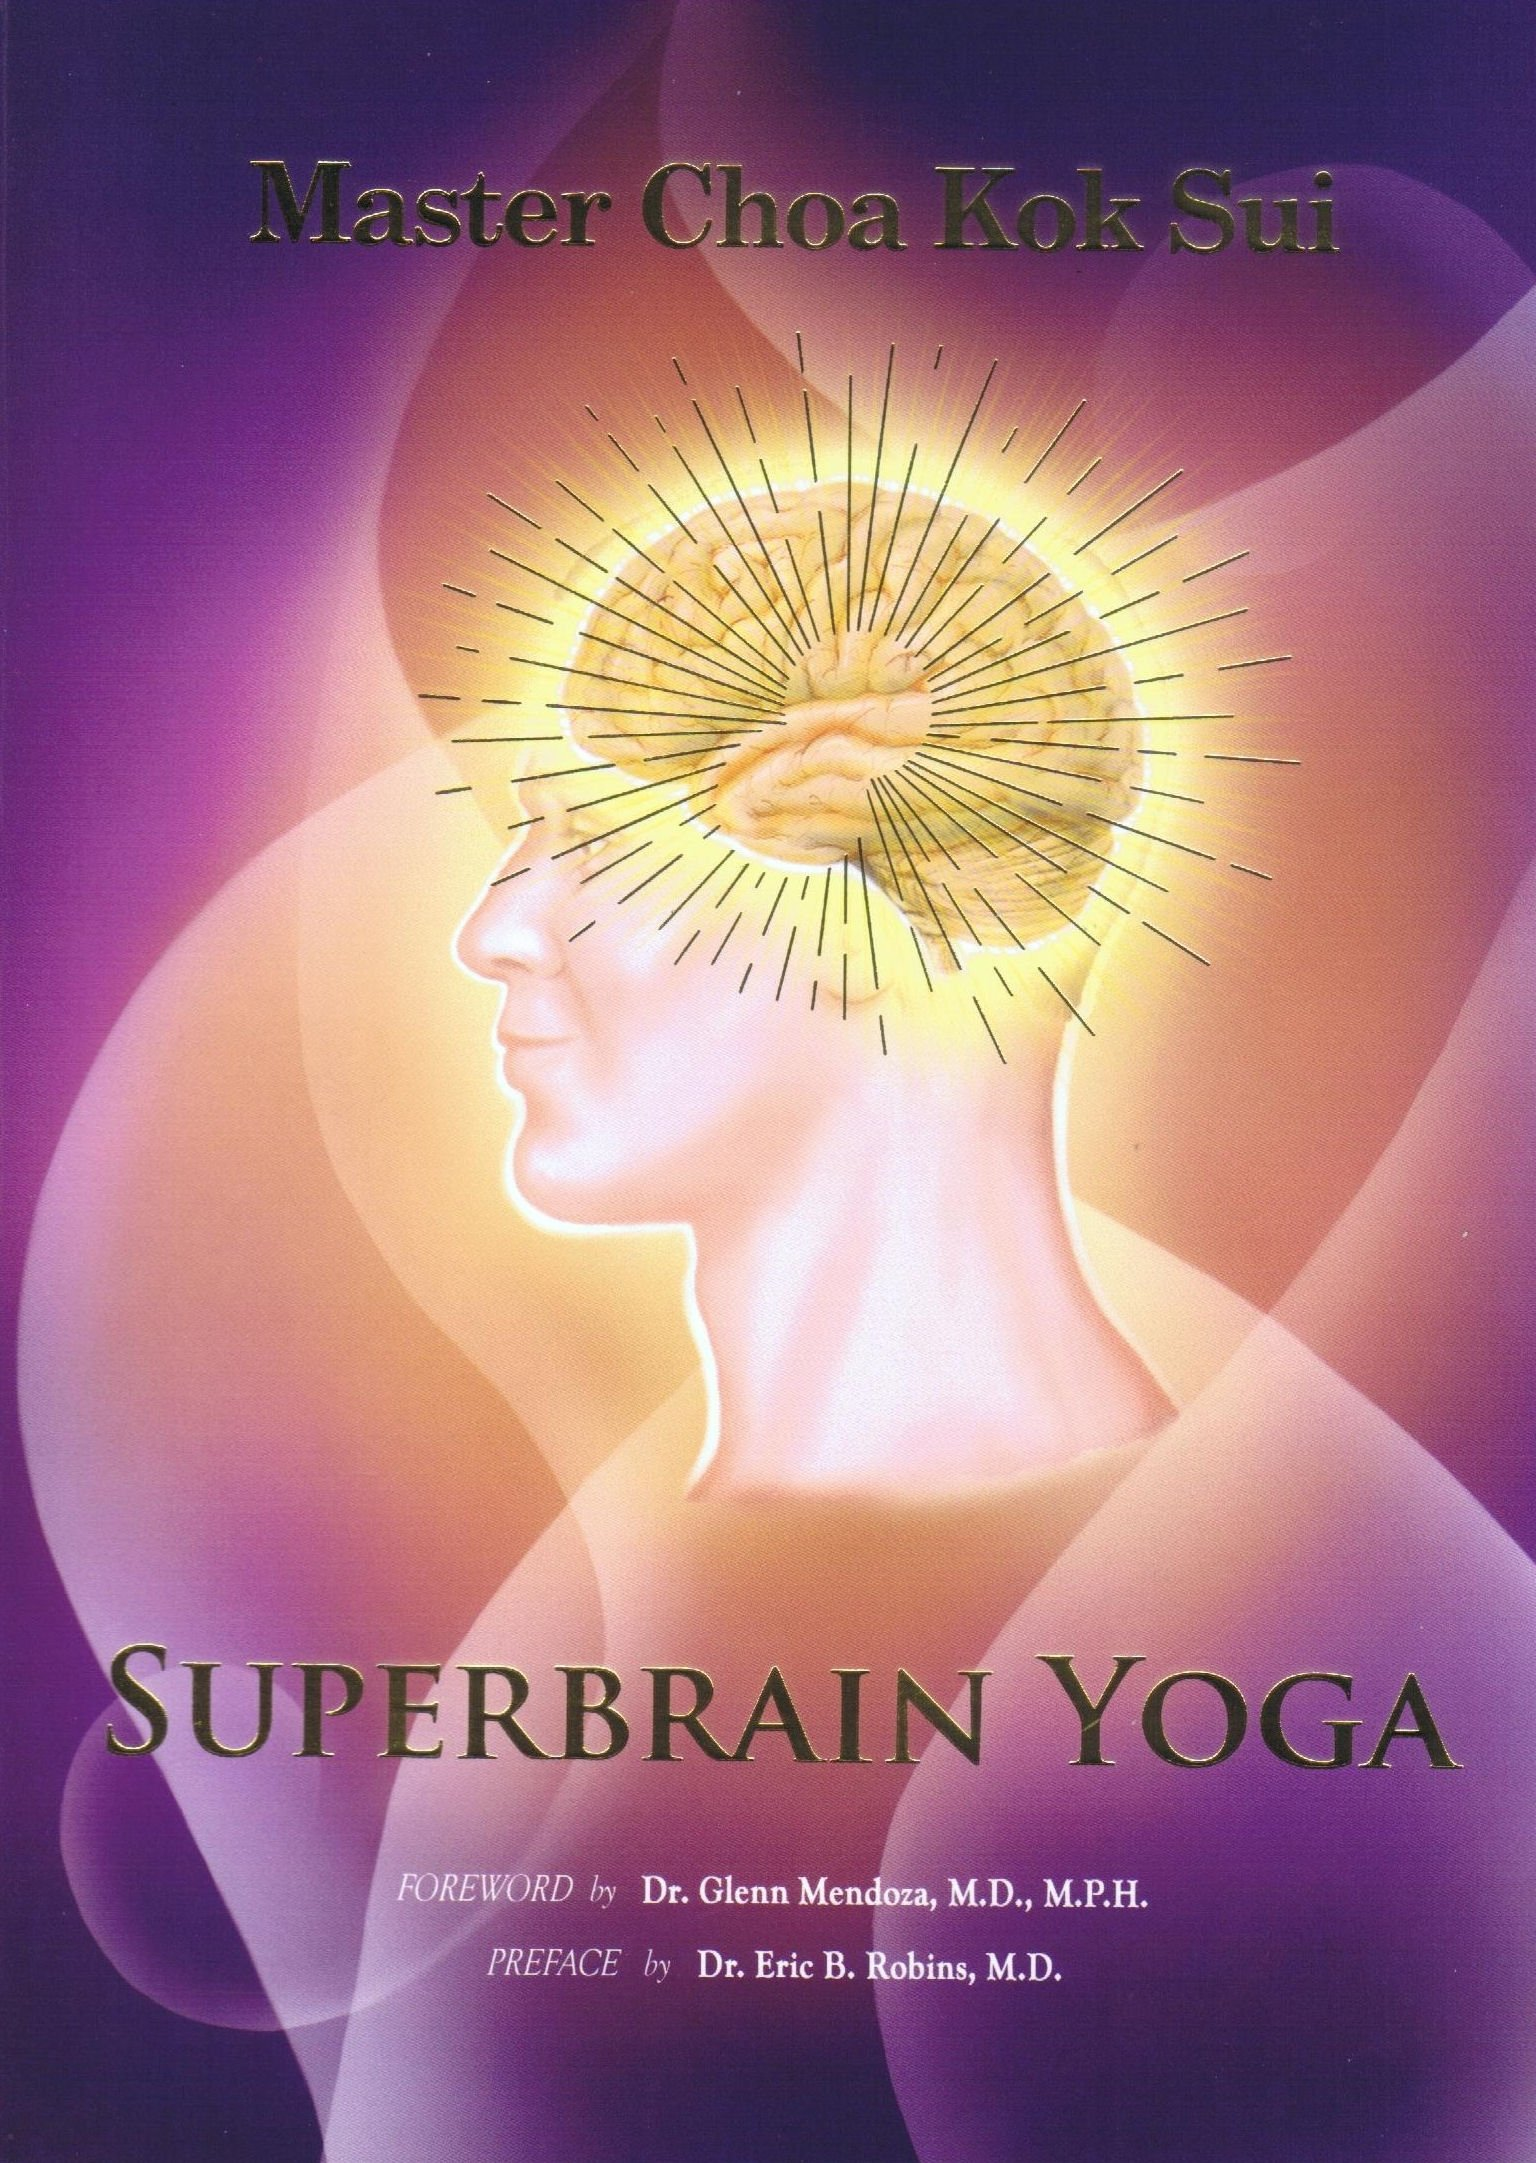 Superbrain Yoga Latest Edition Pranic Healing Master Choa Kok Sui 9789710376063 Amazon Com Books